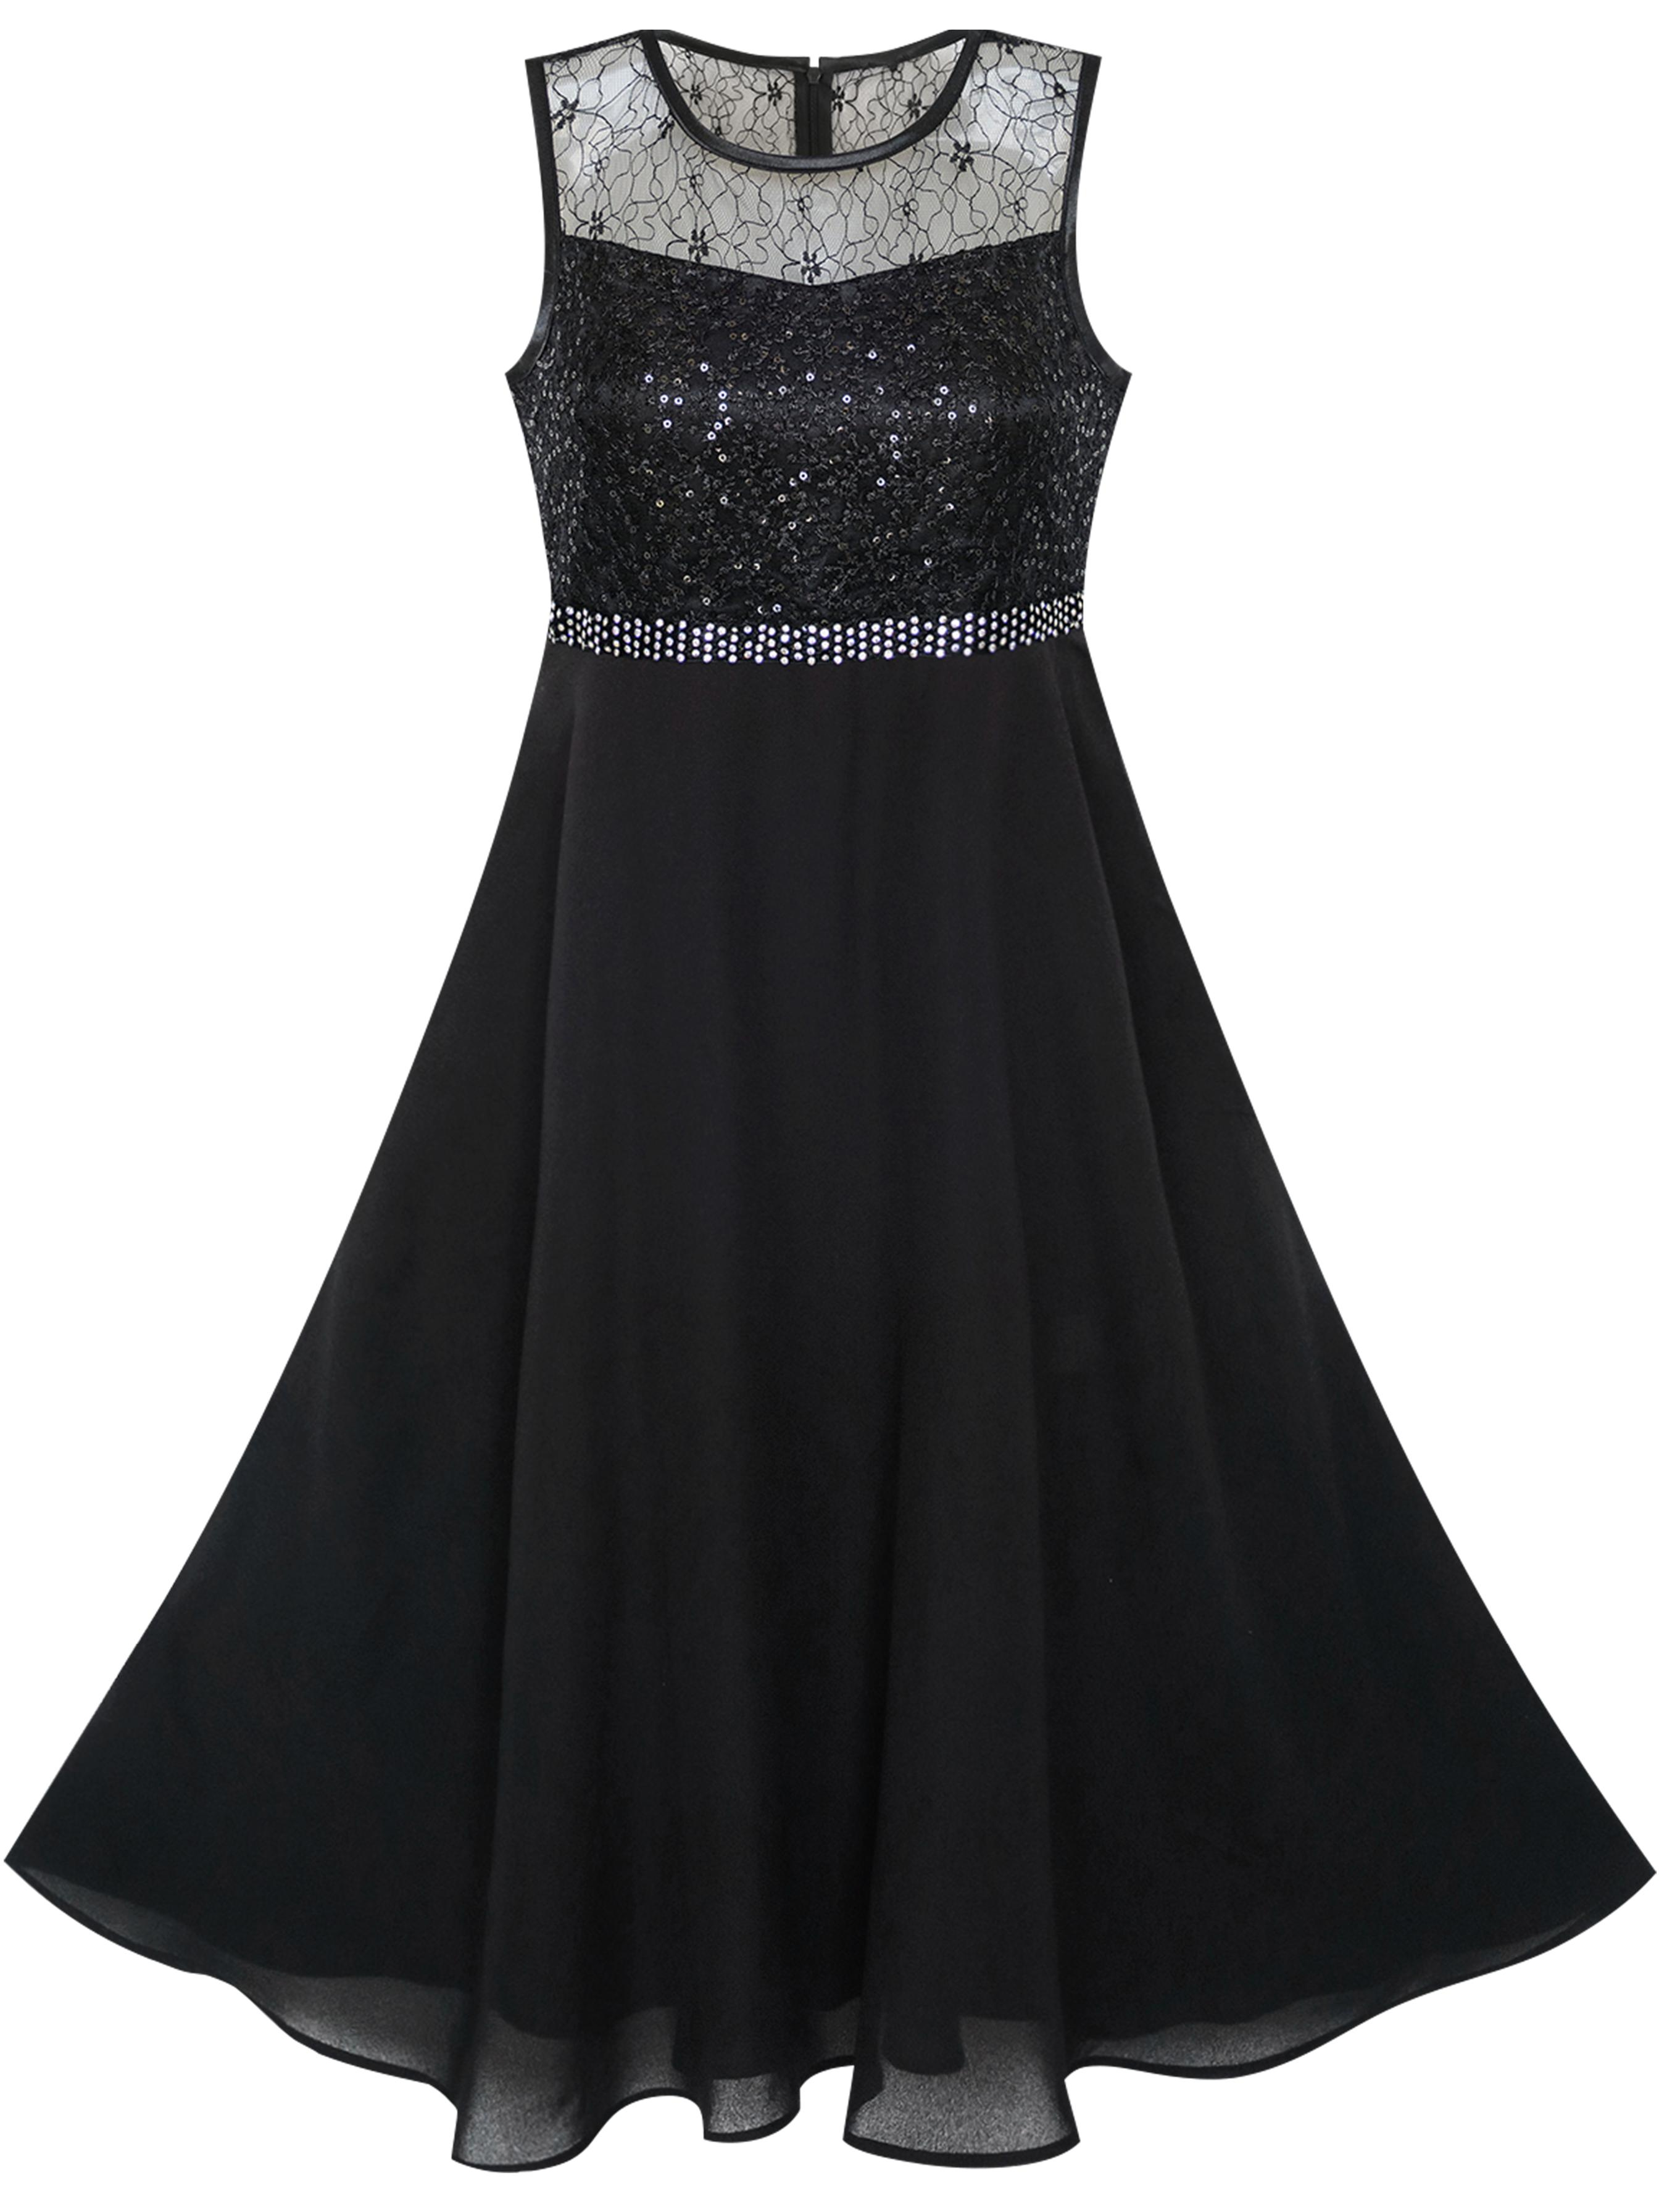 Girls Dress Rhinestone Chiffon Bridesmaid Dance Ball Maxi Gown 6